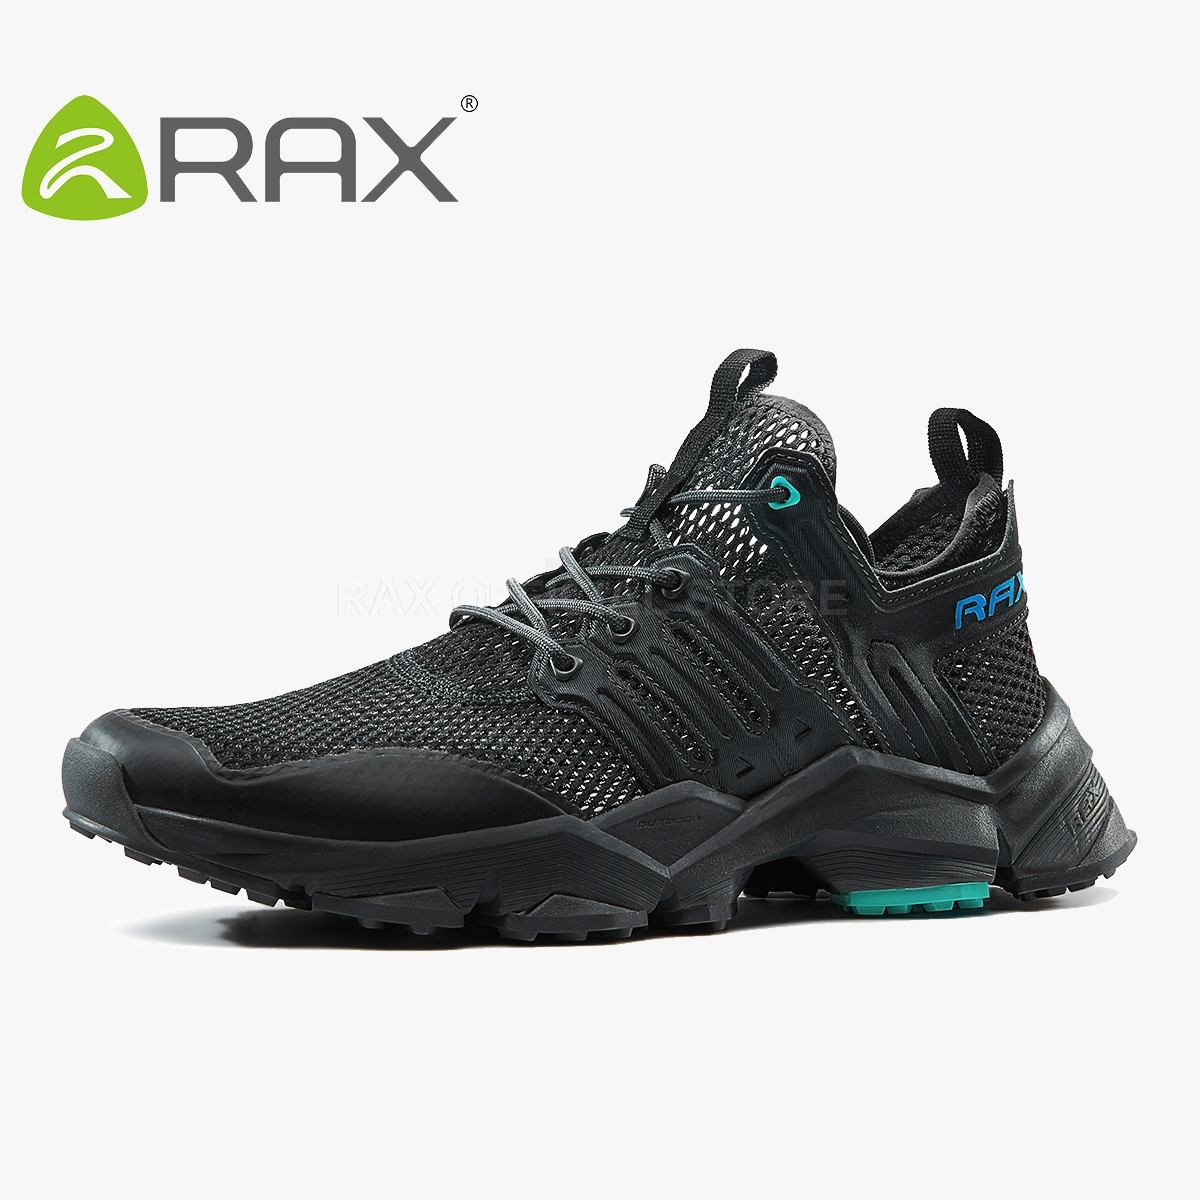 Rax Mens Running Shoes Sport Shoes Men Breathable Running Sneakers Man Trainers Outdoor Sport Shoes Athletic Zapatos De Hombre mulinsen men s running shoes blue black red gray outdoor running sport shoes breathable non slip sport sneakers 270235